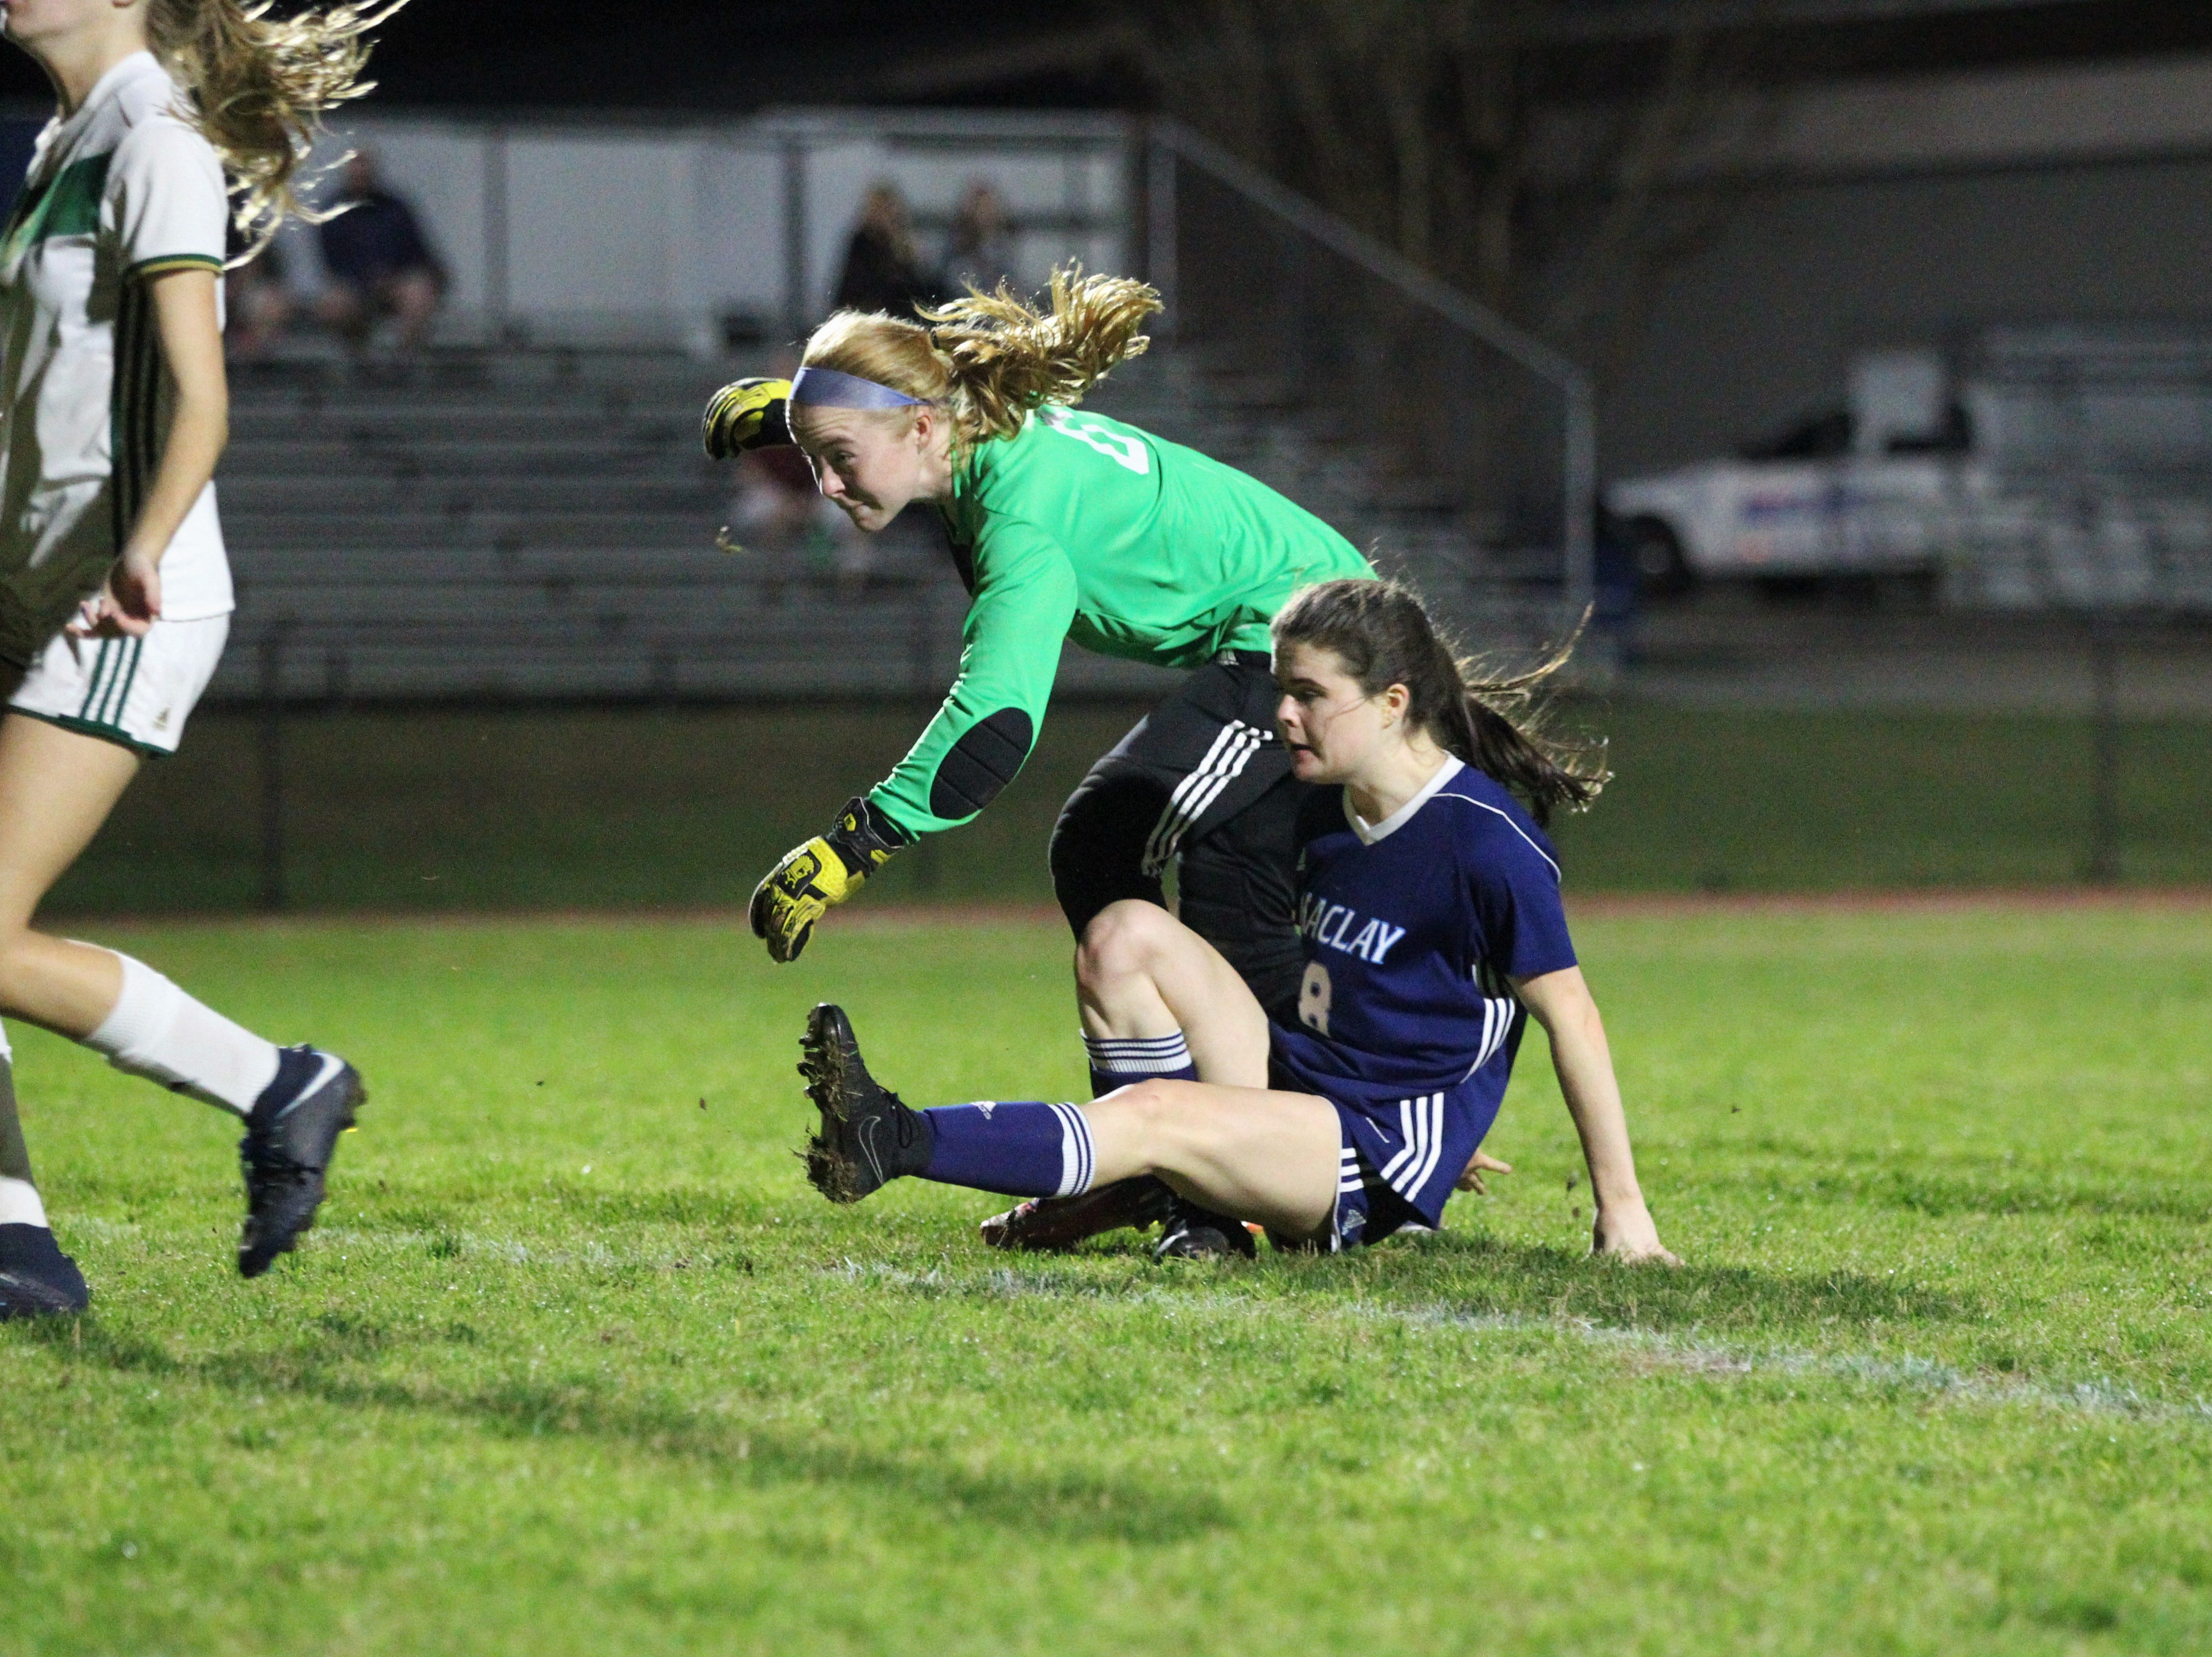 Maclay's Katie Lynch watches a defender misjudge a throw-in, leading to Lynch's goal in the box as Maclay's girls soccer team beat St. Joseph Academy 4-0 in a Region 1-1A quarterfinal on Jan. 5, 2019.